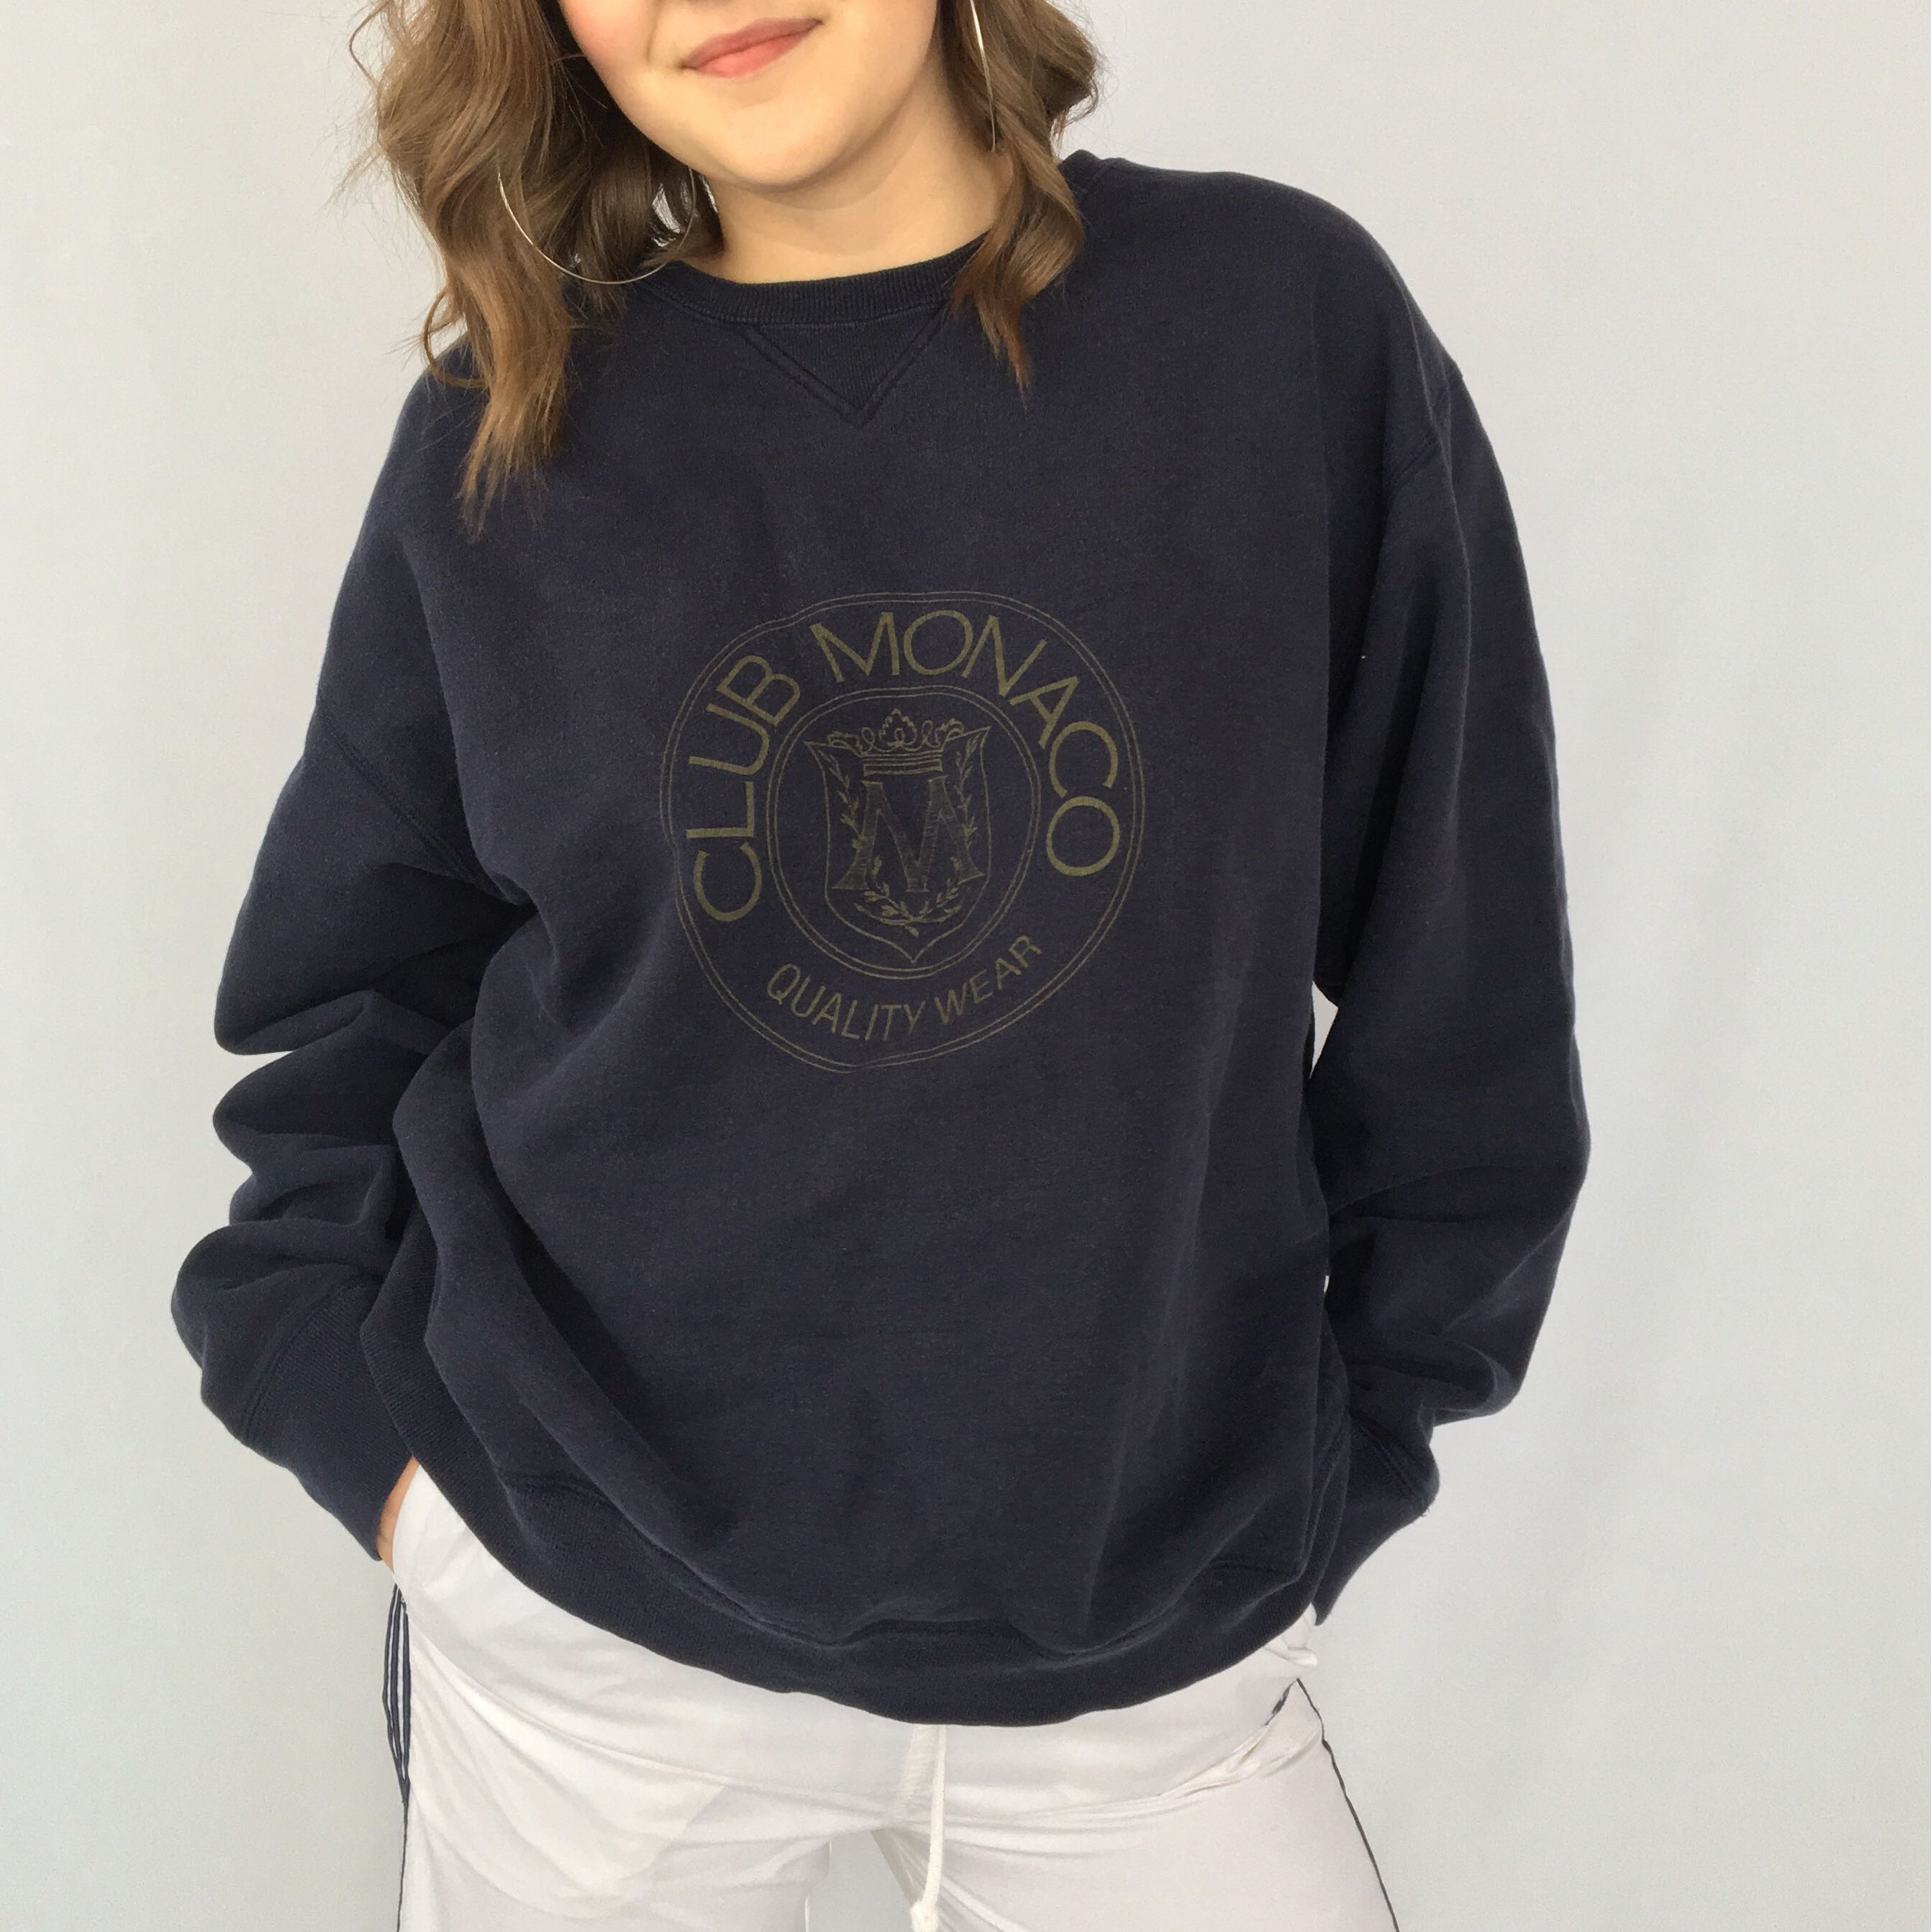 Vintage Club Monaco Pullover Sweater